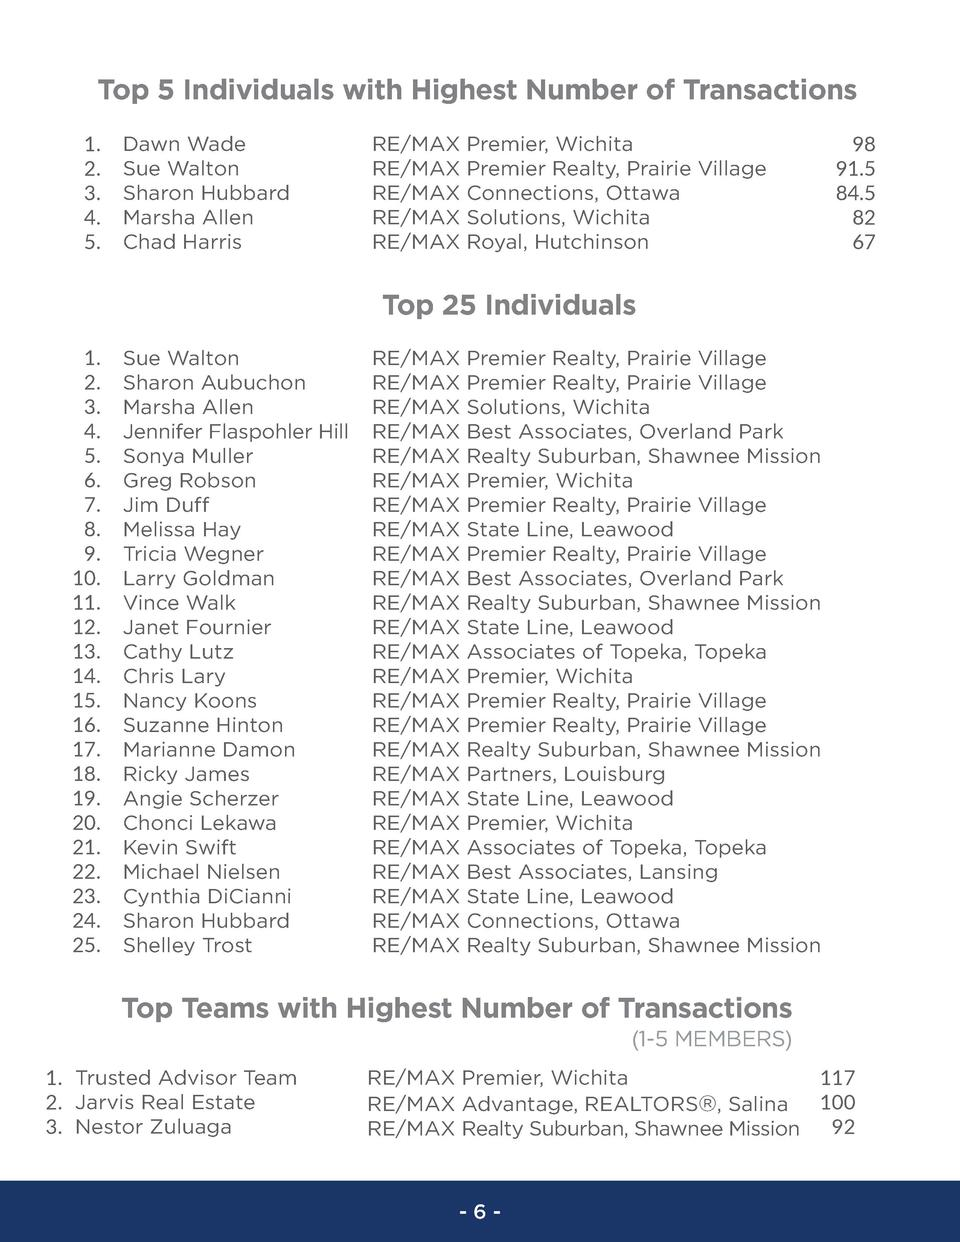 Top 5 Individuals with Highest Number of Transactions 1. 2. 3. 4. 5.  Dawn Wade Sue Walton Sharon Hubbard Marsha Allen Cha...